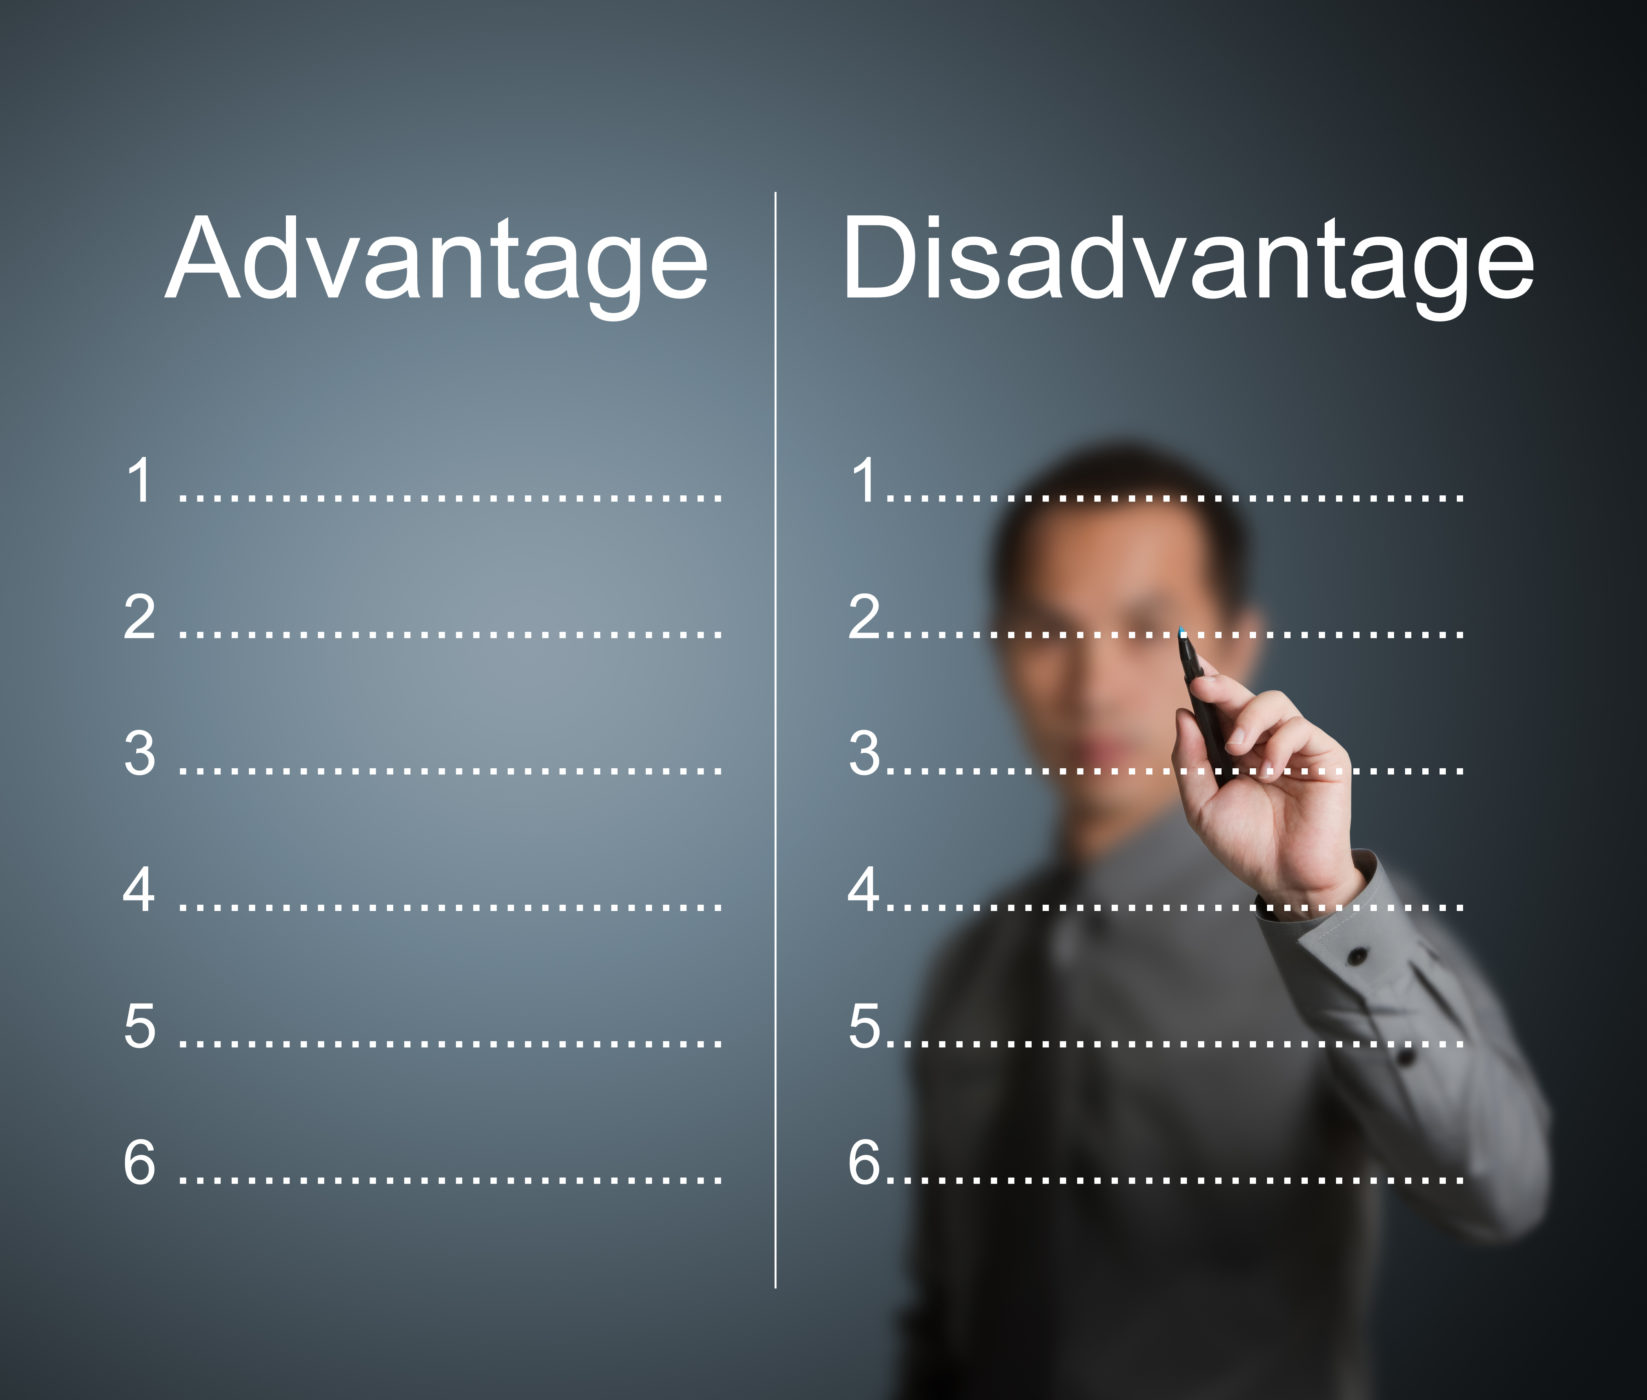 Life Insurance Quotes Compare The Market: Top 6 Advantages And 5 Disadvantages Of Having Life